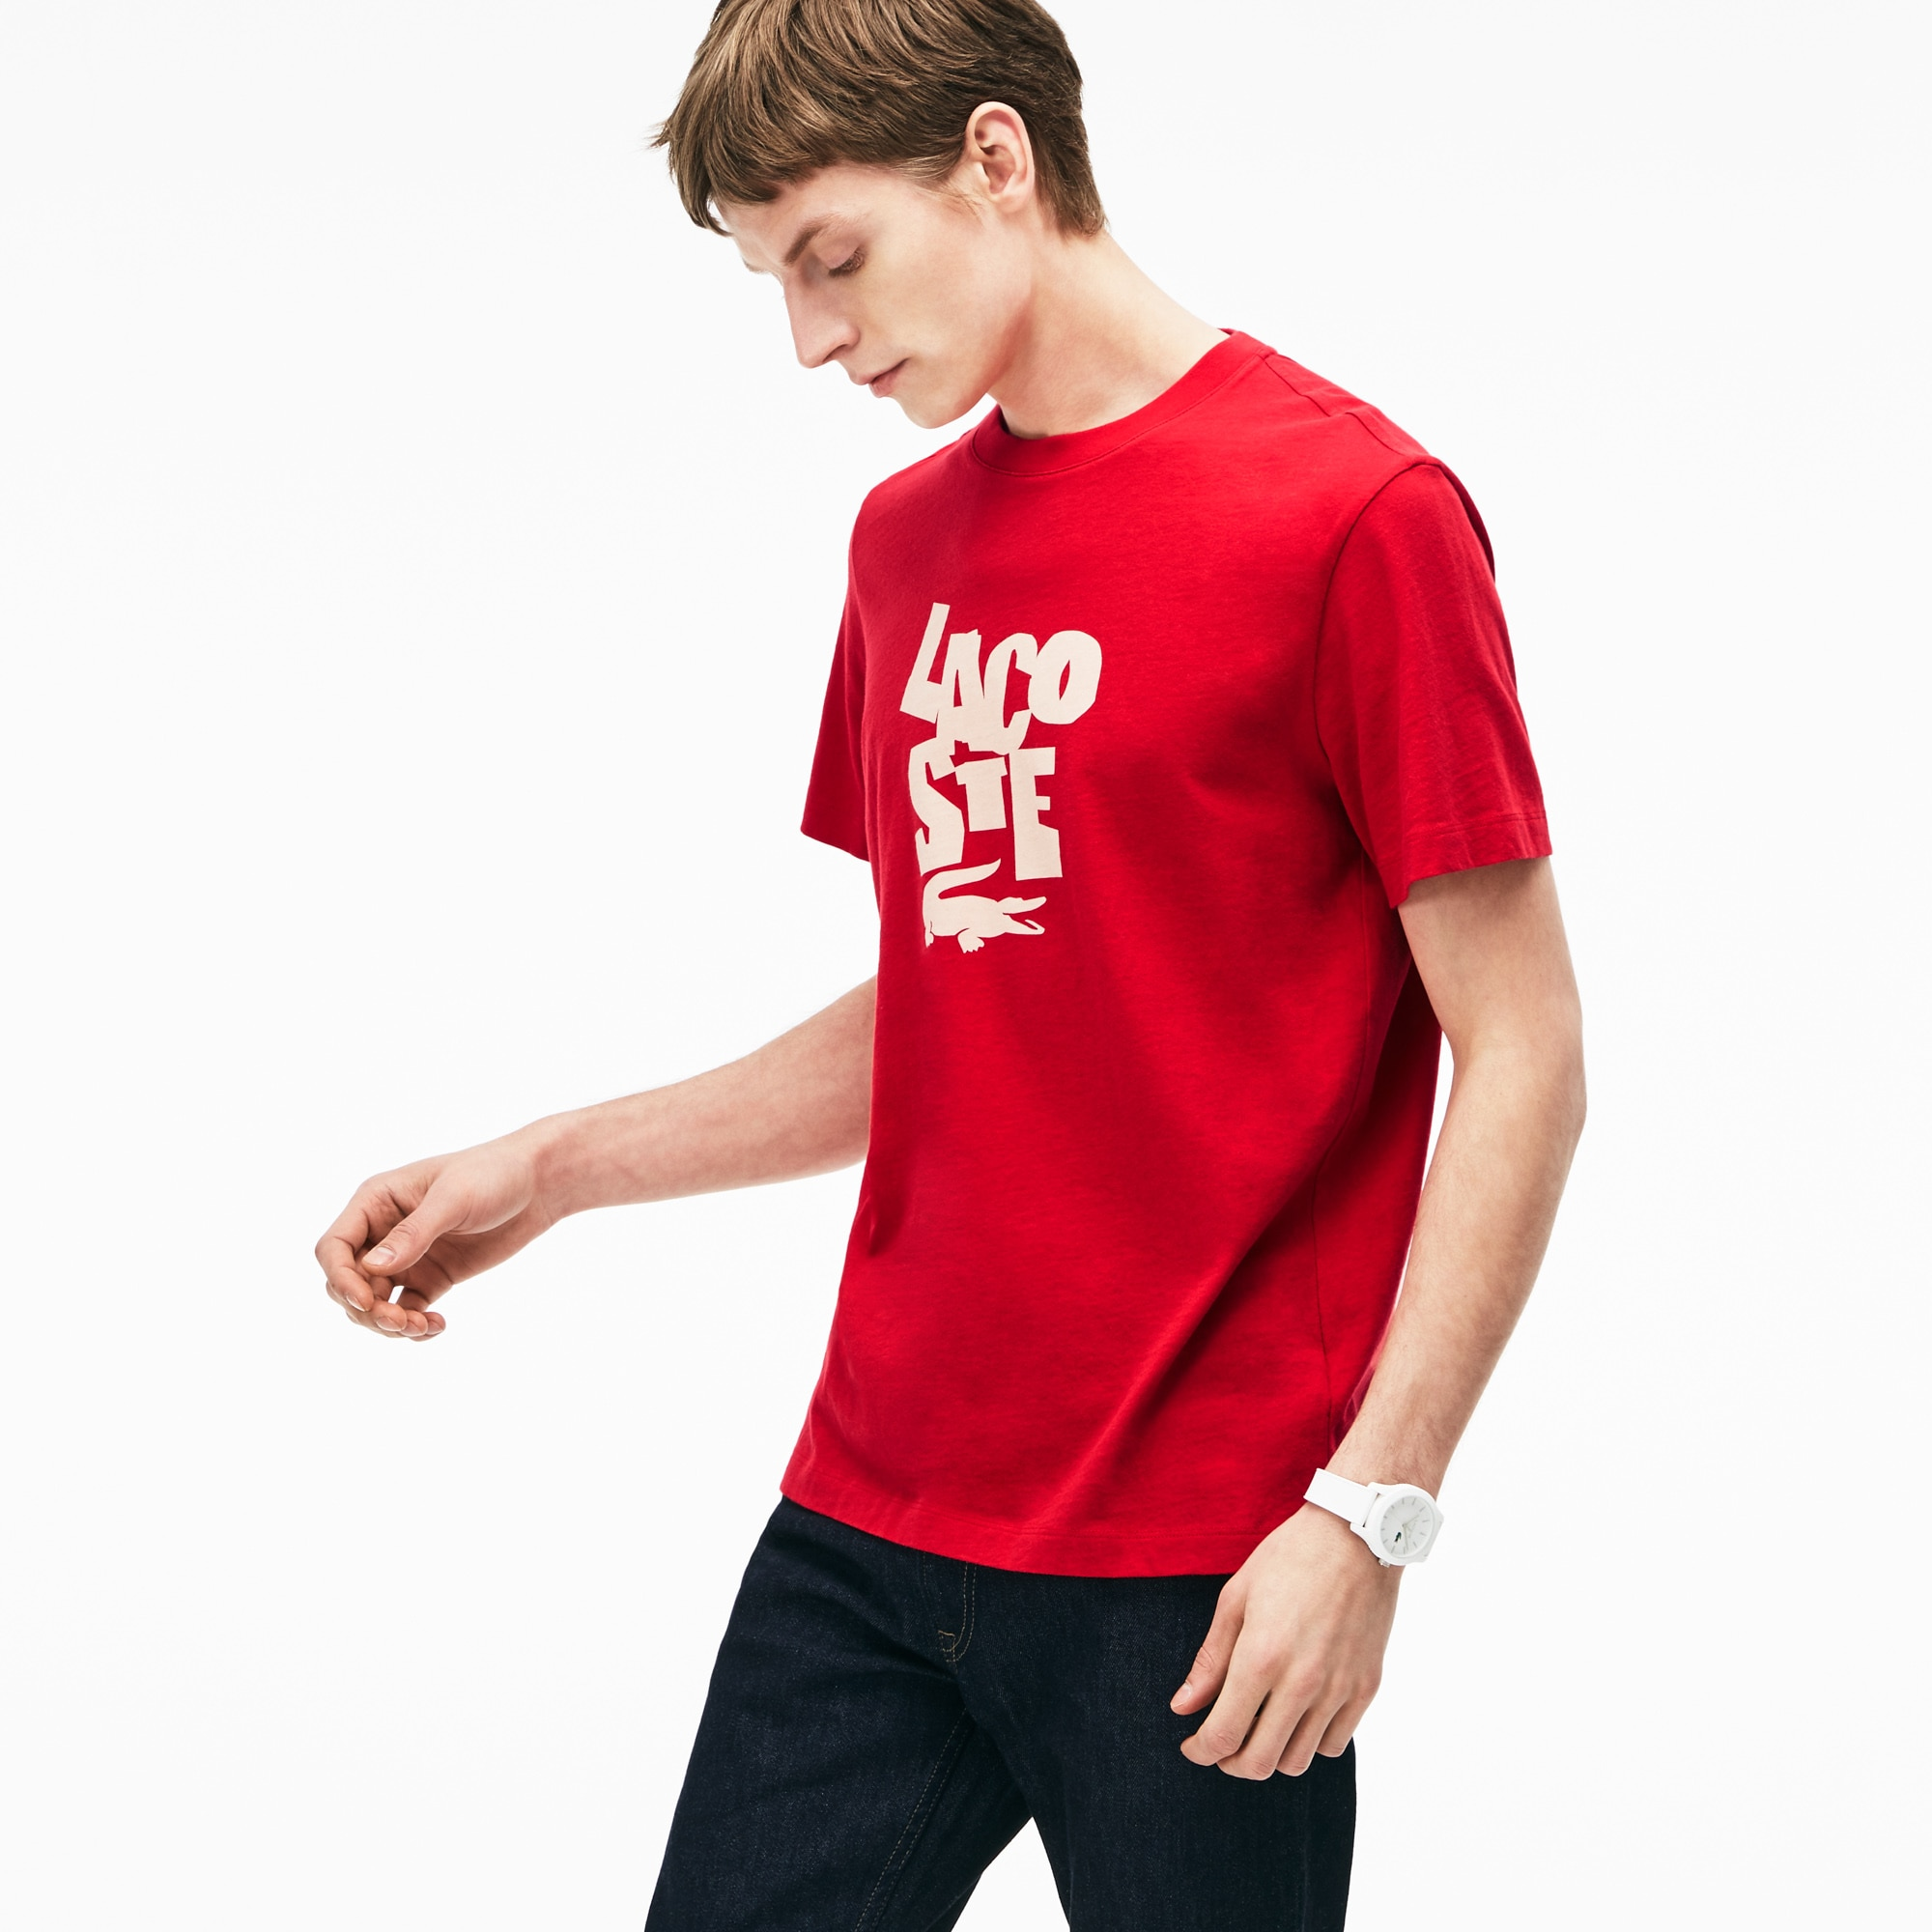 Men's Crew Neck Lacoste Lettering Cotton Jersey T-shirt